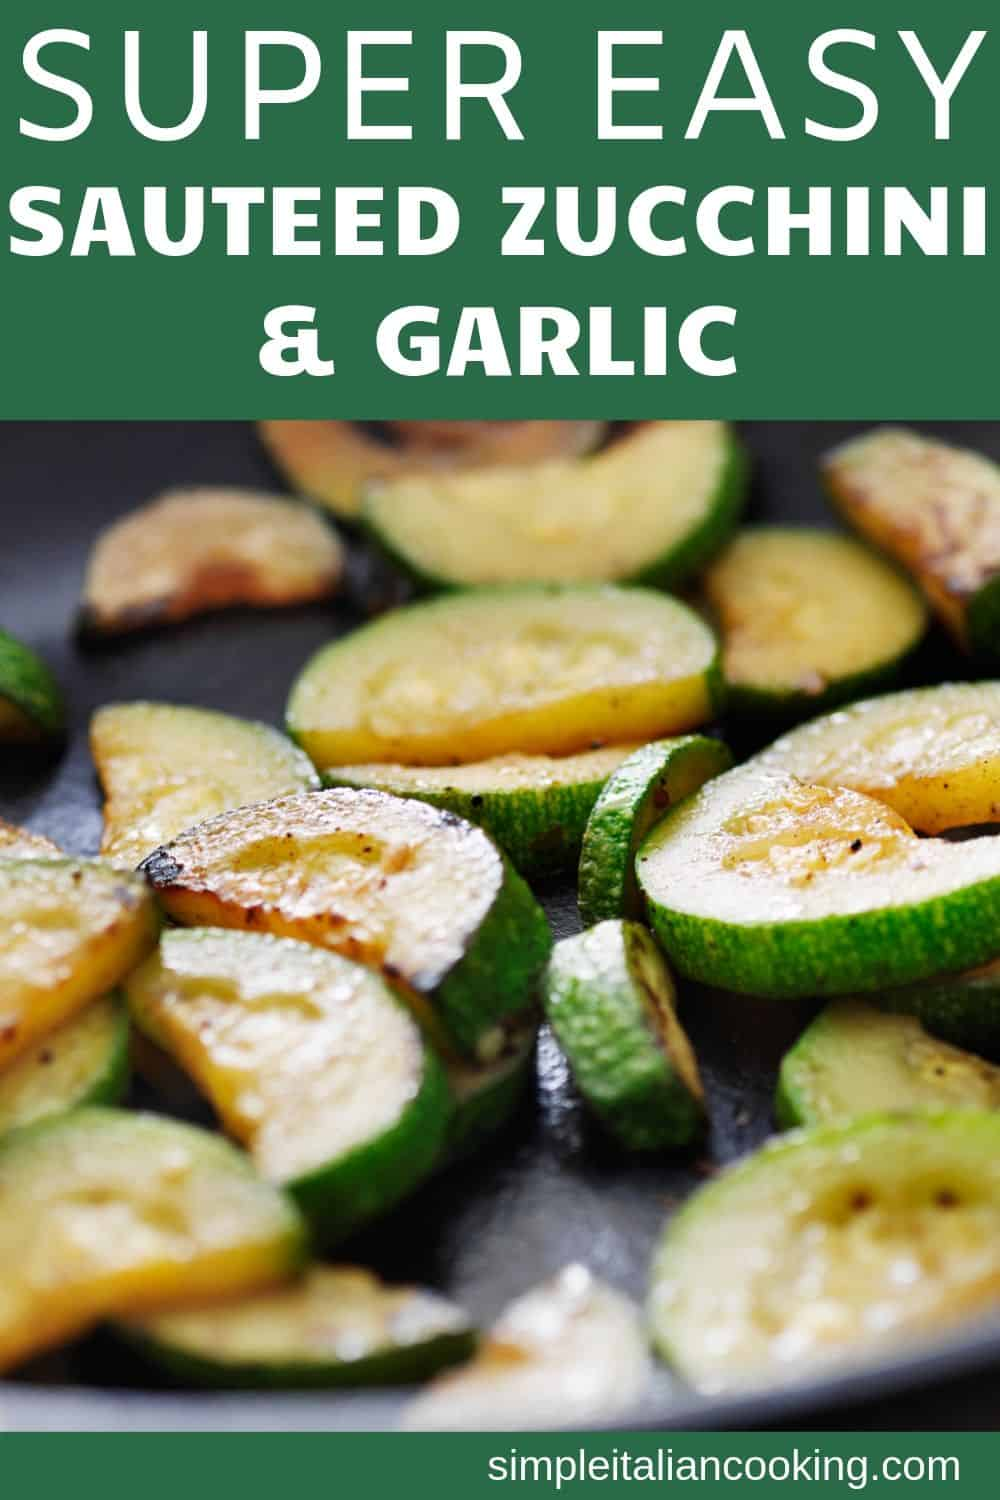 Delicious and easy Italian zucchini recipe.  Sauteed zucchini with garlic and olive oil... couldn\'t be easier for a quick dinner side dish.  Goes great with pasta!  #zucchini #italianrecipe #vegetablerecipes #vegetarian #easydinner #easysidedish